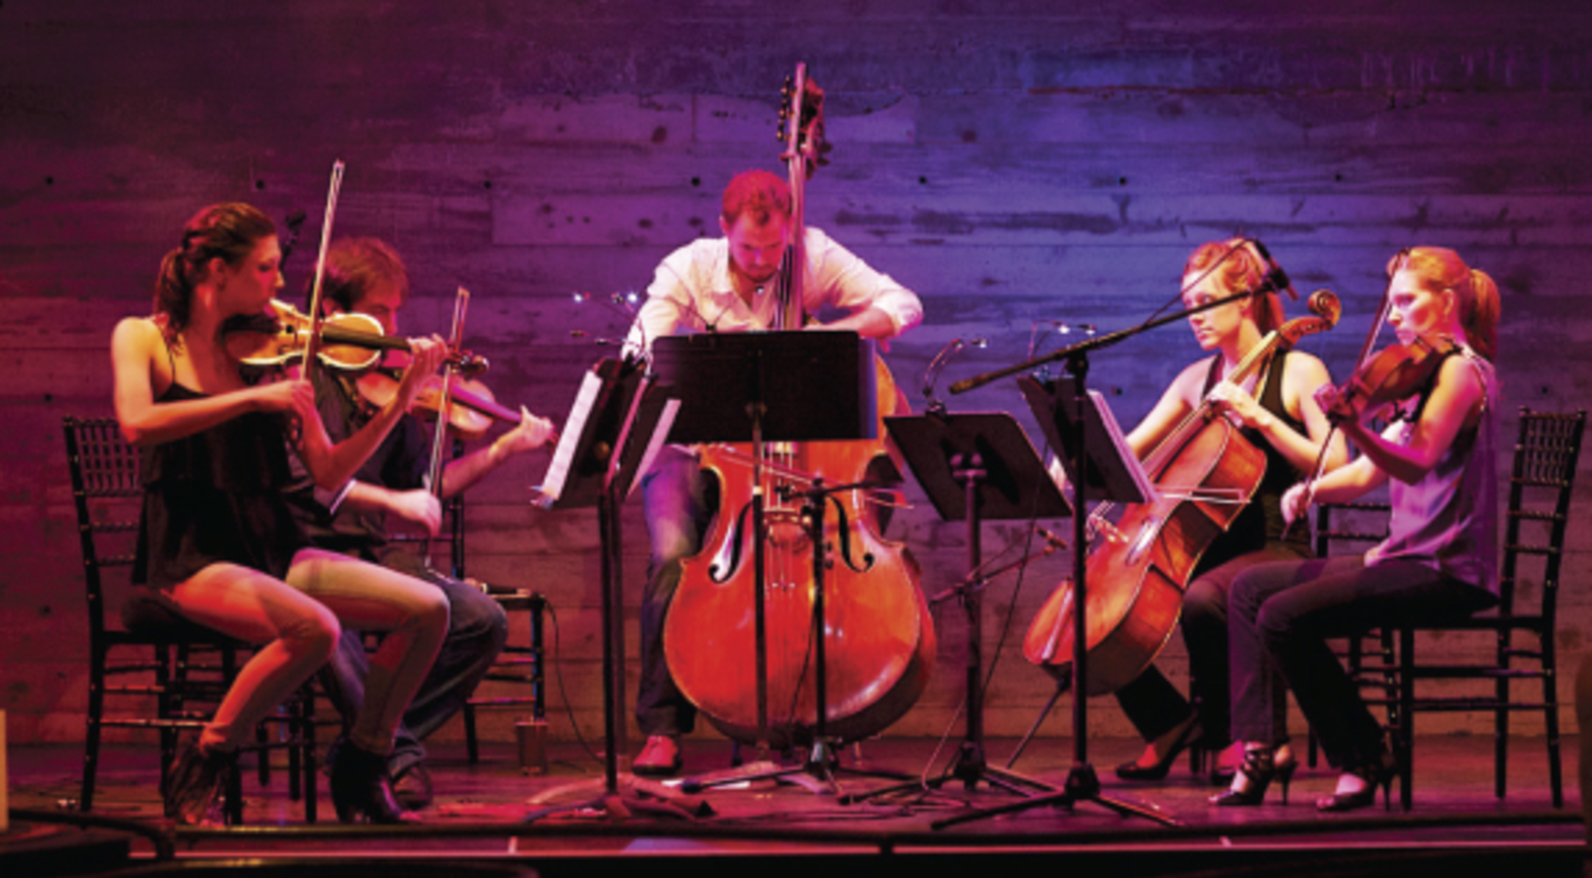 """Sybarite5 @the cell: w/ special guests Blythe Gaissert, Djordje Nesic, & Sean Ritenauer    SYBARITE5 RETURNS HOME TO NYC FOR TWO CONCERTS @THE CELL   w/NYC PREMIERES AND NEW COLLABORATIONS    November 6 & 7, 2014, 8:00pm   @the cell, 338 w 23rd St, NYC (btwn 8th & 9th)    Acclaimed string quintet Sybarite5 continues their 2014 residency with groundbreaking collaborations at the cell in Chelsea, NYC. The concerts include reimagined works by Frederic Rzewski and Emmy-award winner Glen Roven. Three distinguished guest artists will join Sybarite5: mezzo-soprano Blythe Gaissert from the Metropolitan Opera, pianist Djordje Nesic, and percussionist Sean Ritenauer, who frequently performs with the New York Philharmonic.    Rzewski's intense work, Coming Together combines an instrumental score with chilling narration, the text of which comes from letters written by an inmate by Attica prison inmate Sam Melville who was one of the leaders of the 1971 Attica riots. Roven's sweeping new work Goodnight Moon derives its text from the popular children's book of the same name. In addition to these collaborative performances, Sybarite5 will perform works from its eclectic repertoire, including Radiohead, Piazzolla and recent commissions from Andy Akiho and Shawn Conley.       """"Their rock star status is well deserved. Their classically honed technique mixed with grit and all out passionate attack transfixes the audience...""""   That is how the Sarasota Herald Tribune described Sybarite5, the first string quintet ever selected as a winner of the Concert Artists Guild International Competition and Sylvia Ann Hewlett Adventurous Artist Prize. Comprised of Sami Merdinian and Sarah Whitney, violins; Angela Pickett, viola; Laura Metcalf, cello; and Louis Levitt, bass, Sybarite5 has taken audiences by storm all across the US, forever changing the perception of chamber music performance. From the moment their bows hit the strings, this quintet of talented, diverse musicians takes the audience """